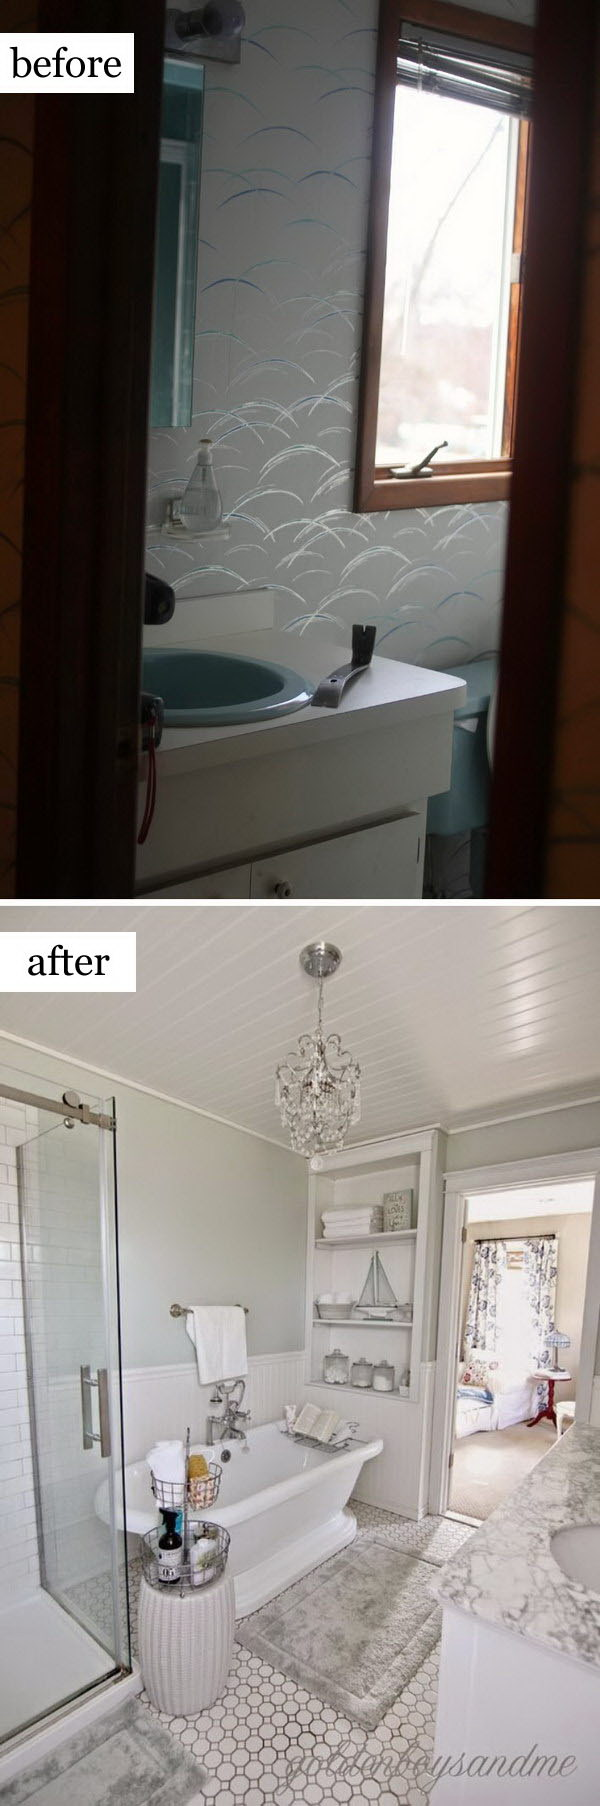 Before And After Makeovers Most Beautiful Bathroom Remodeling - 20 elegant bathroom makeover ideas